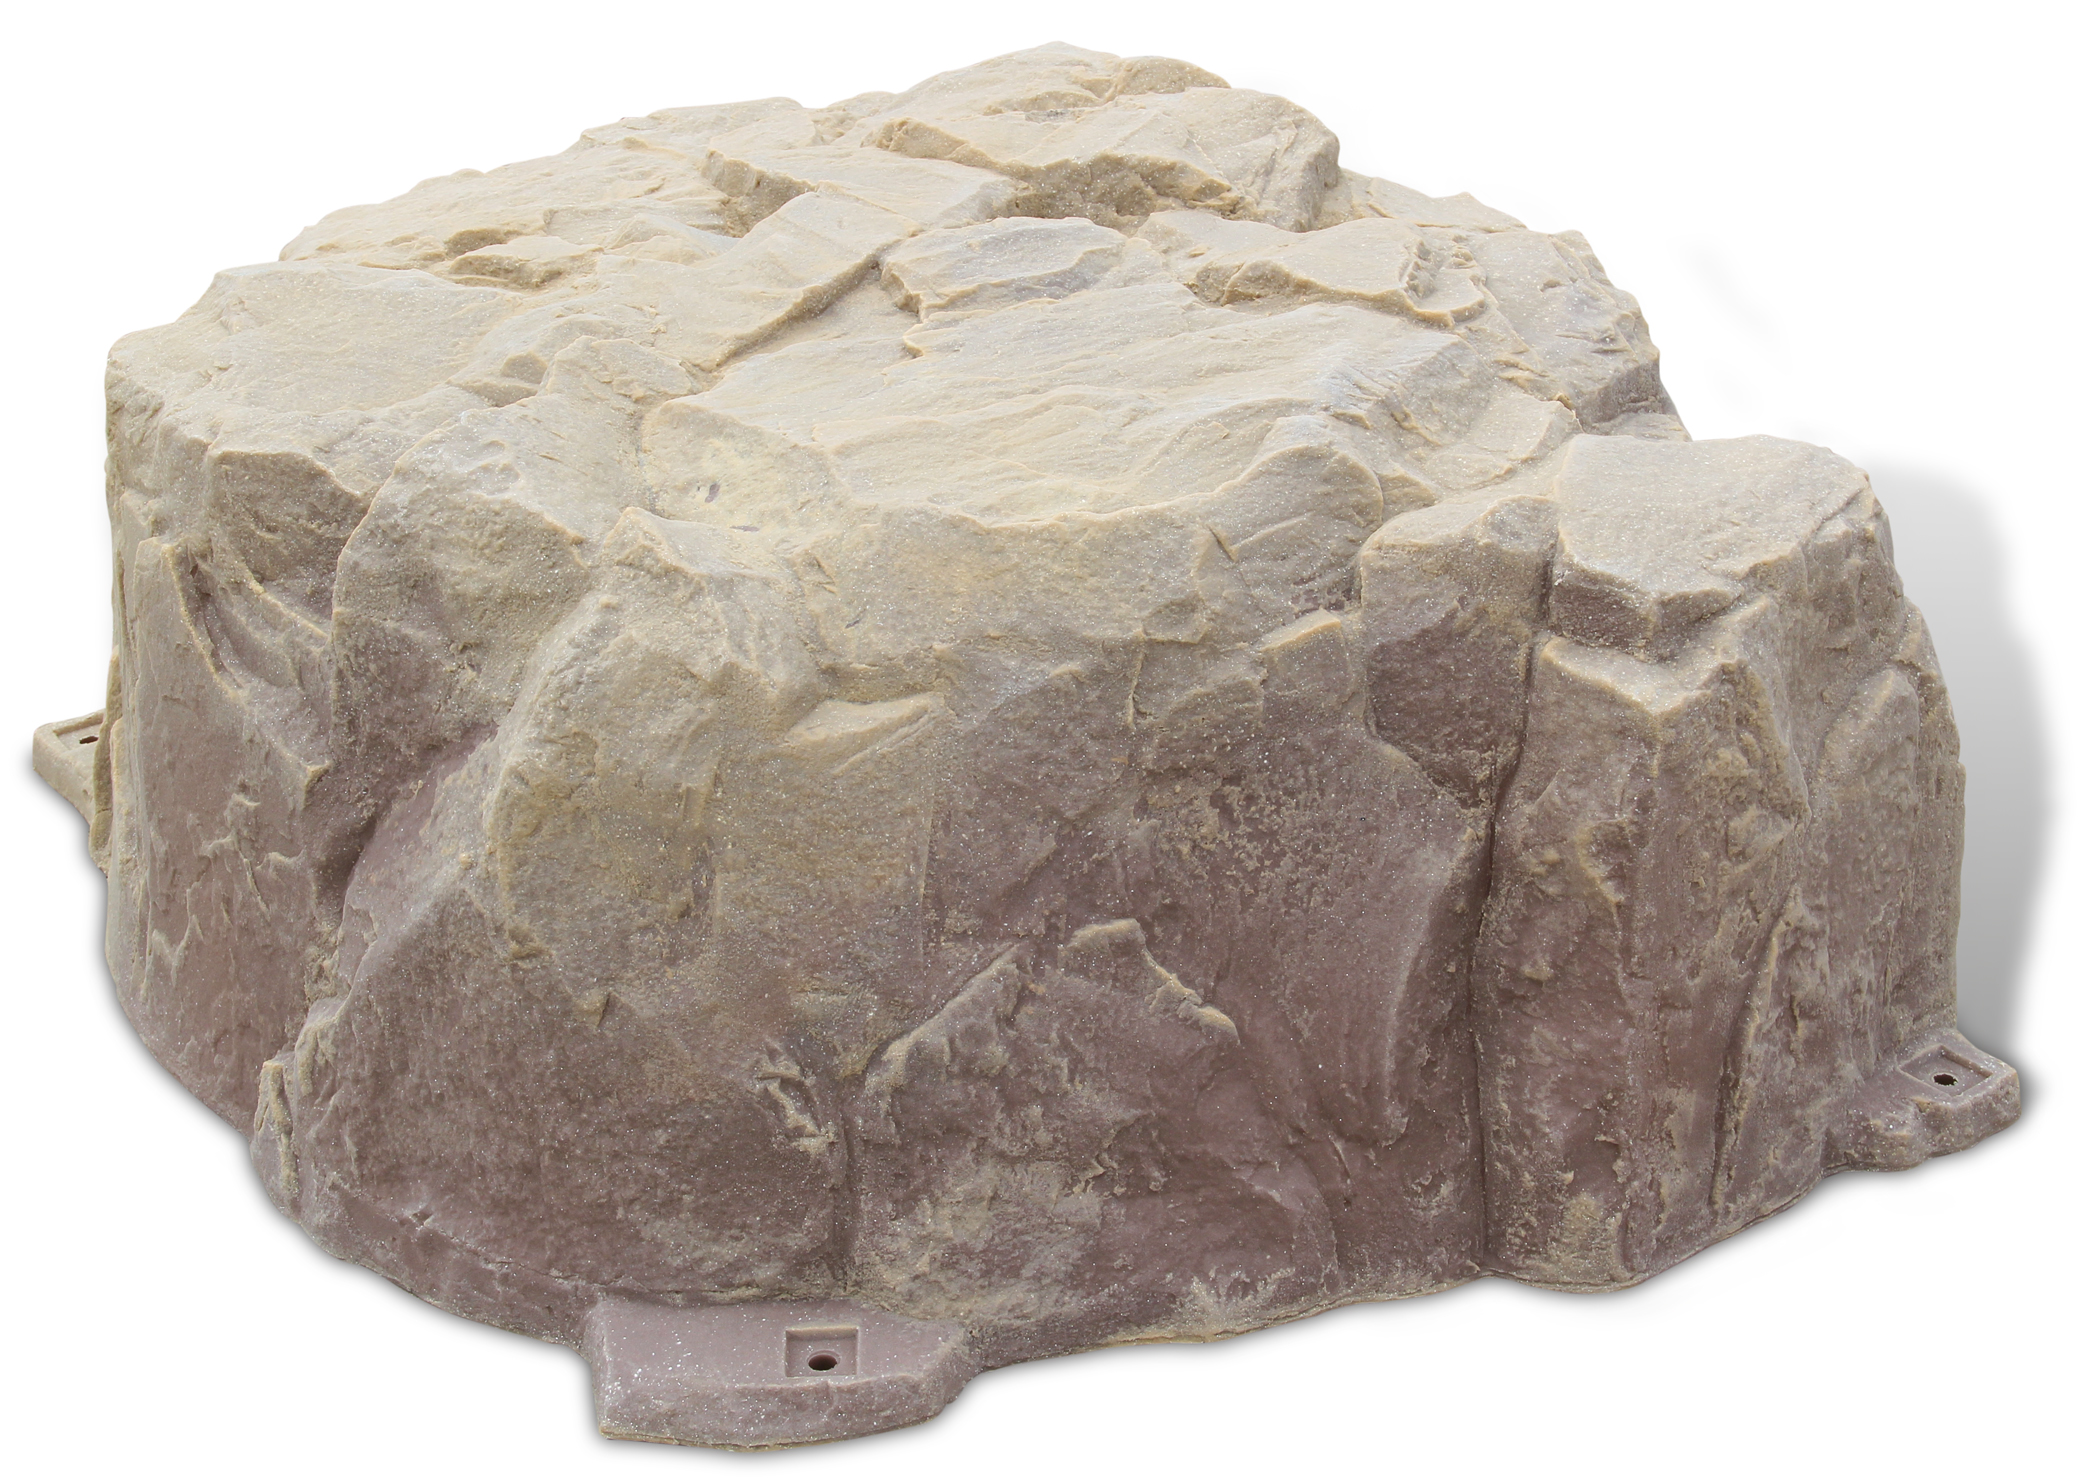 Fake Rock Septic Cover Model Sandstone Image 560